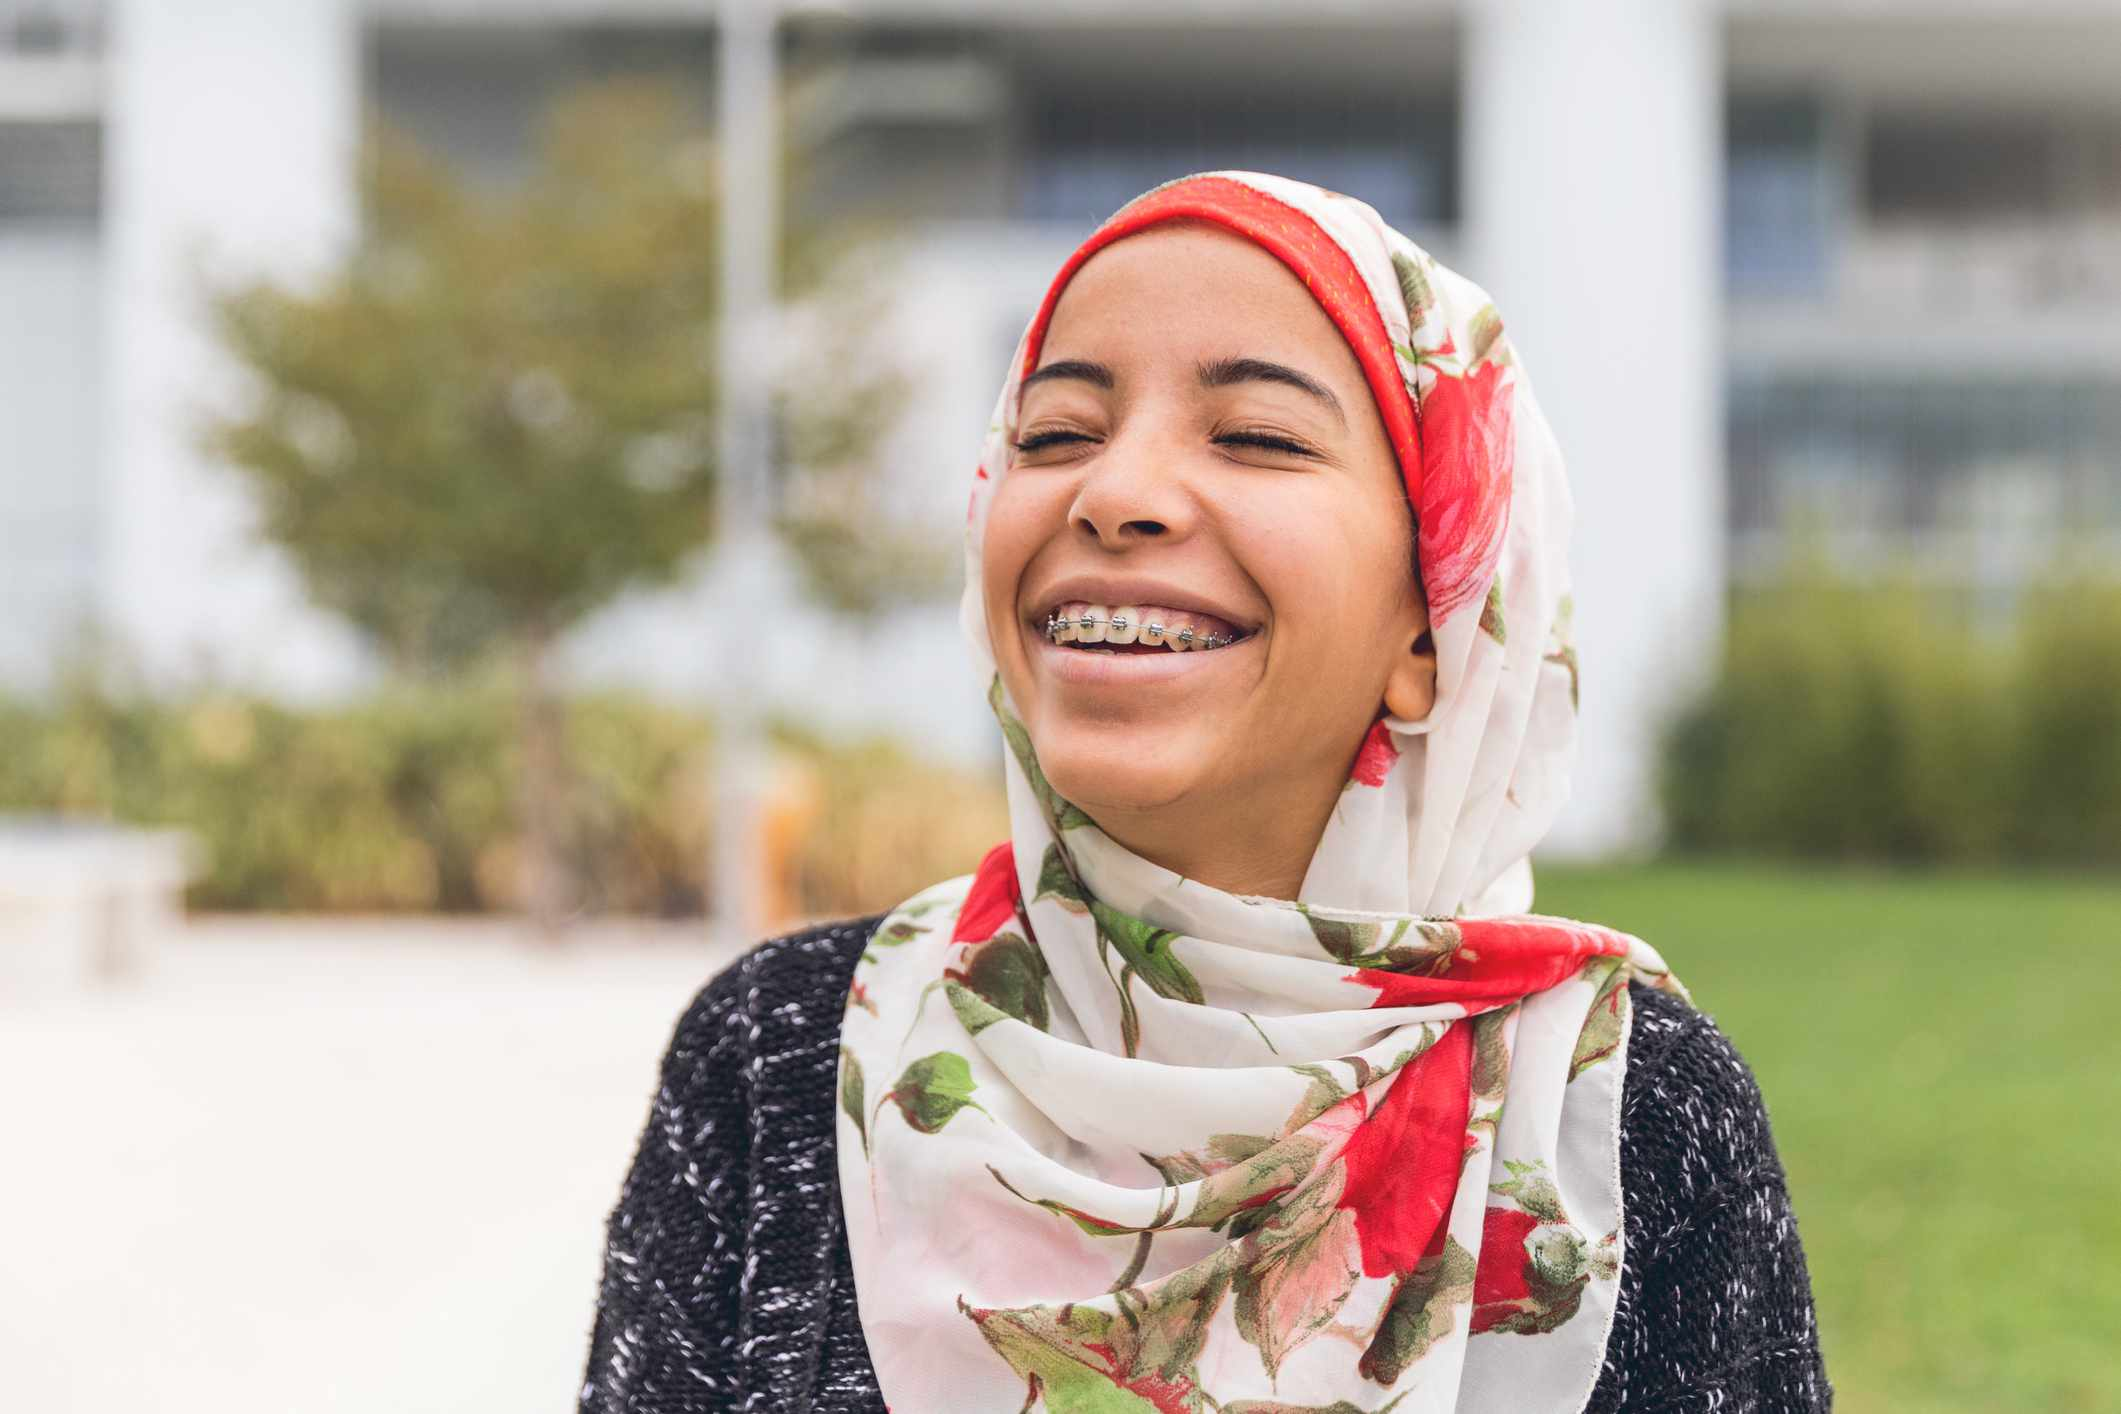 Smiling girl in hijab with braces